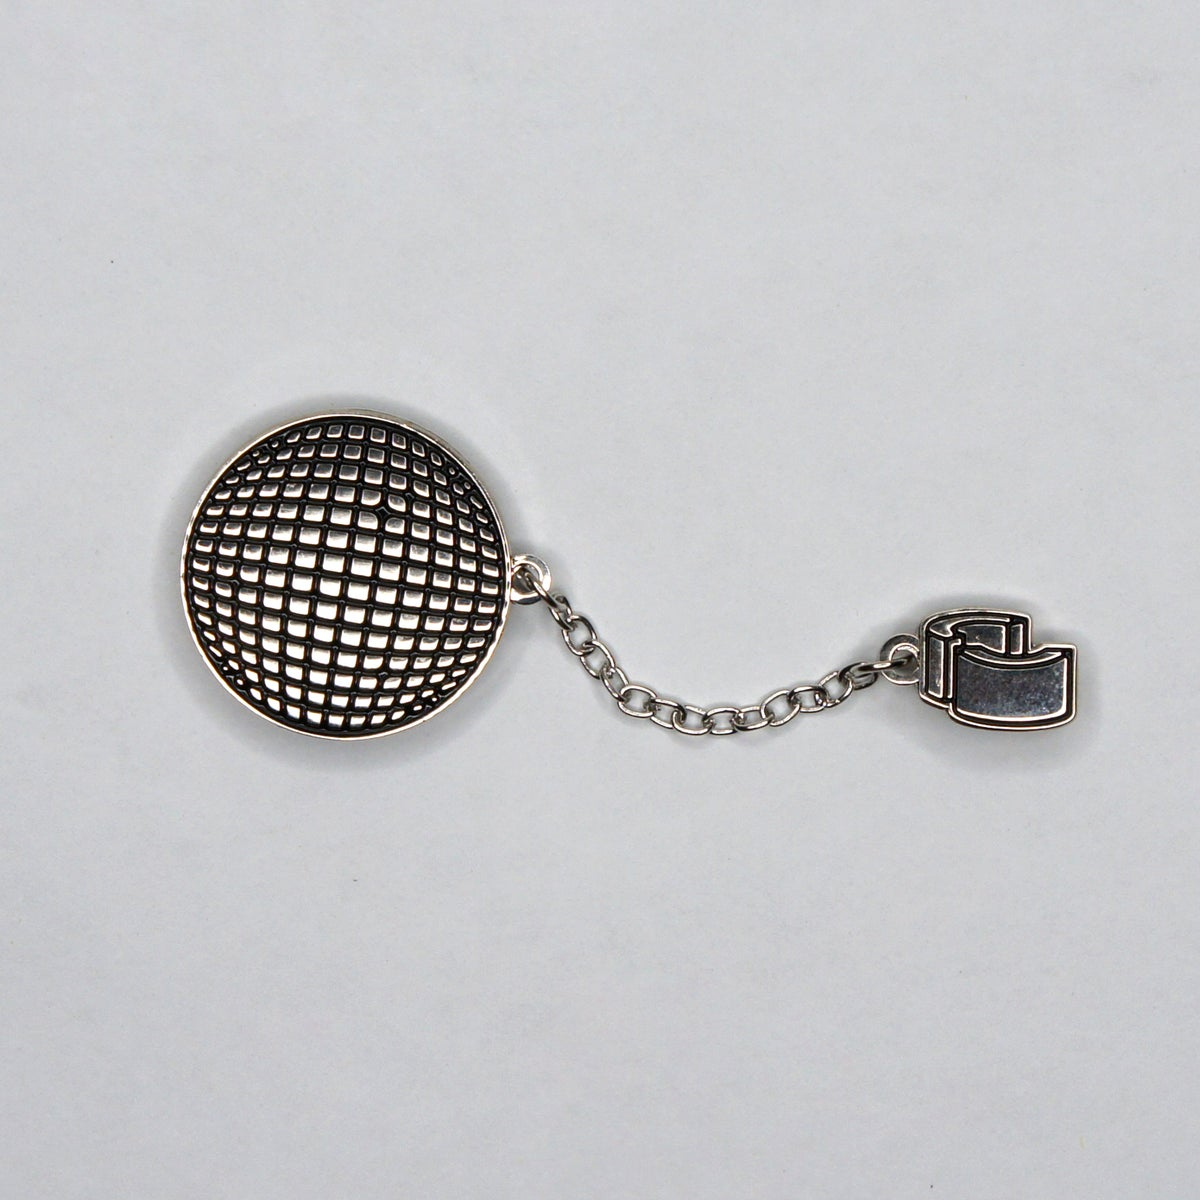 Disco Ball and Chain Enamel Pin